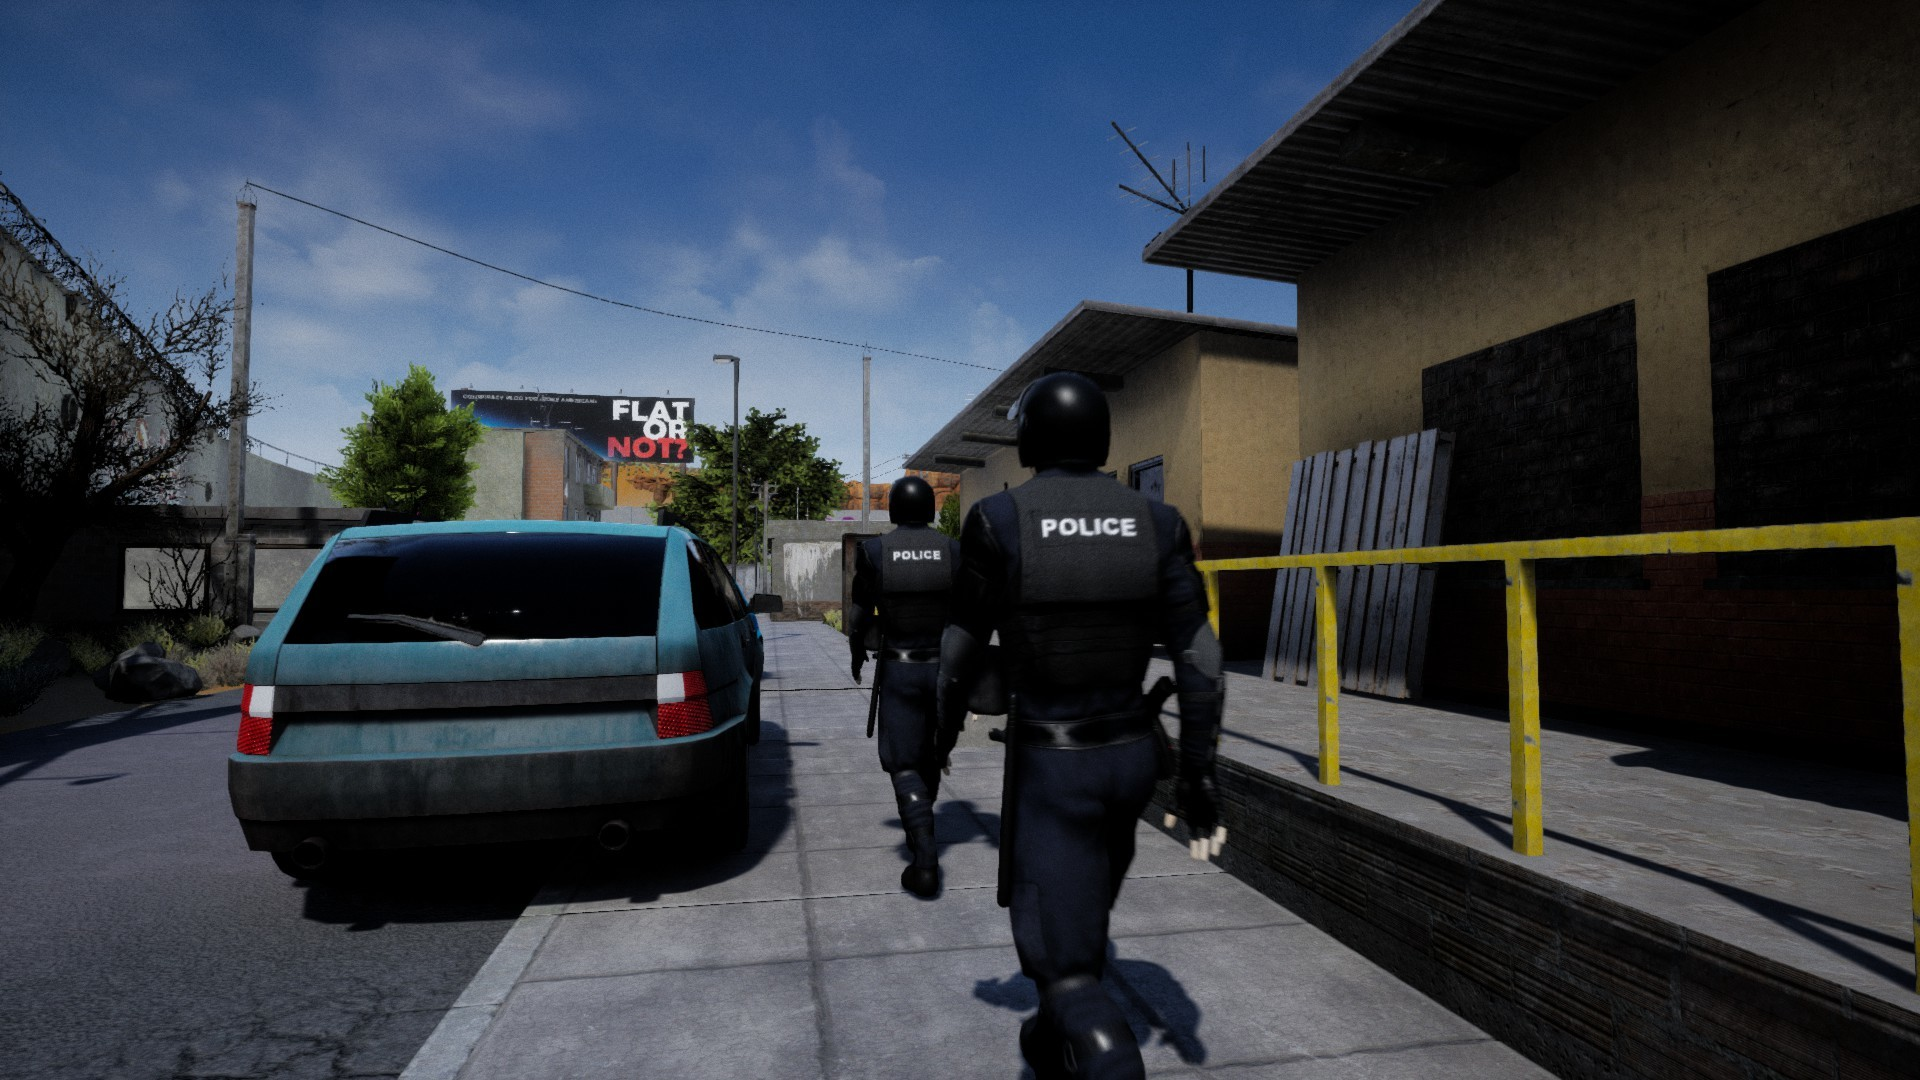 Police patrolling the streets in Drug Dealer Simulator